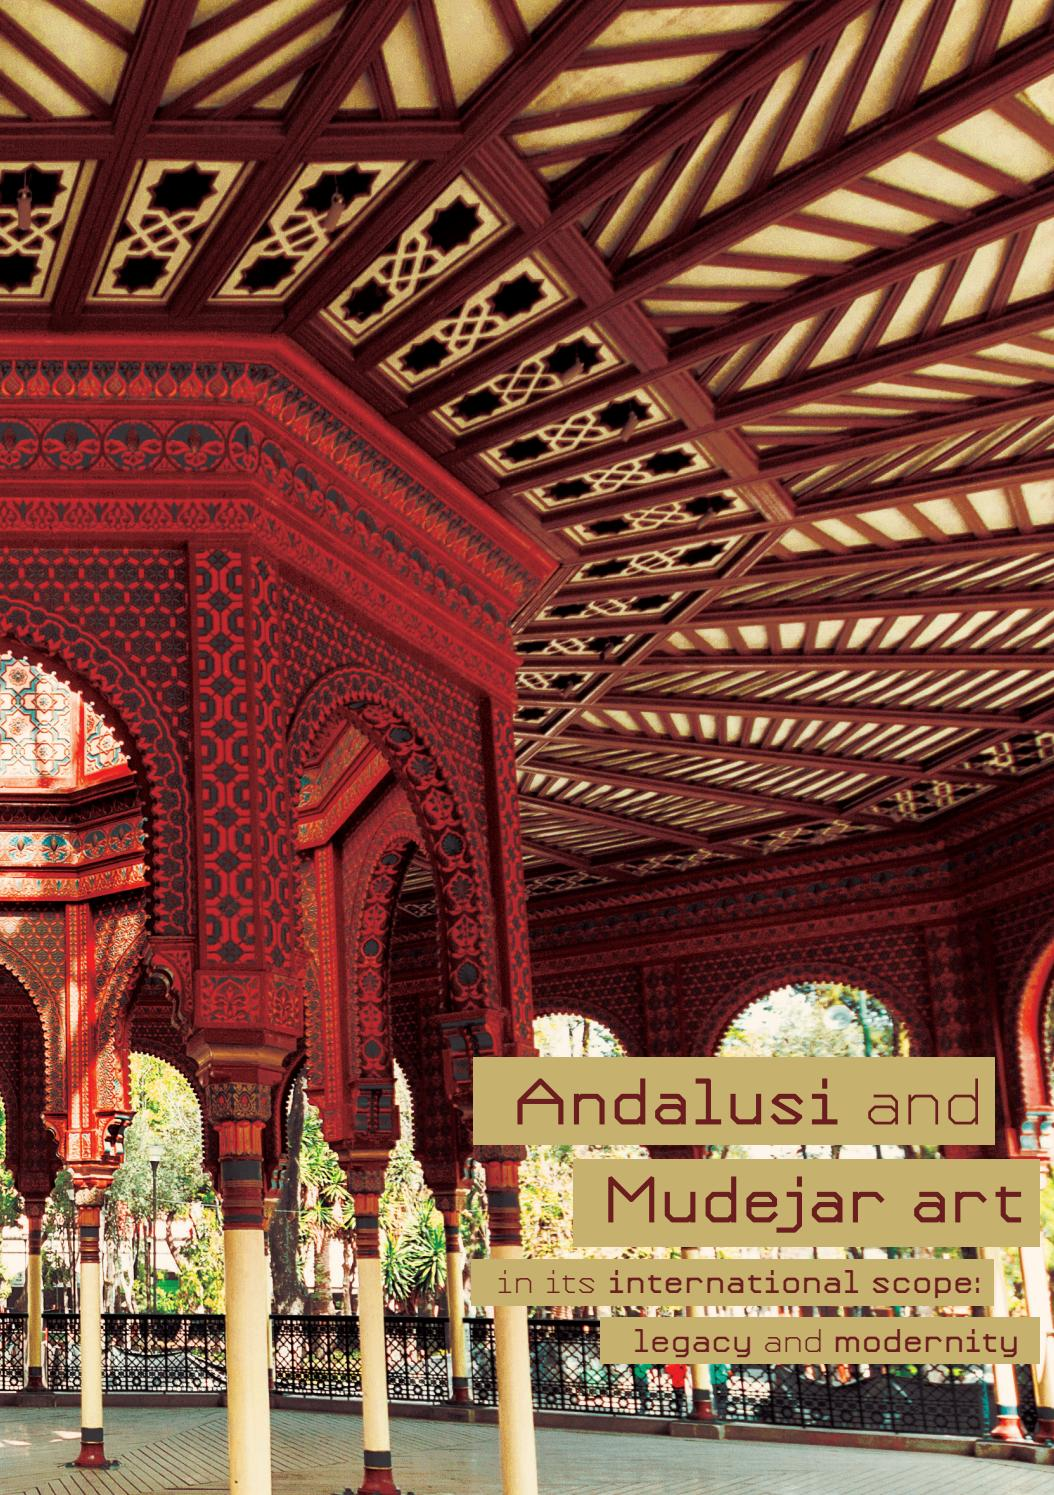 Decoration Sous Sol 2015 andalusi and mudejar art in its international scope: legacy